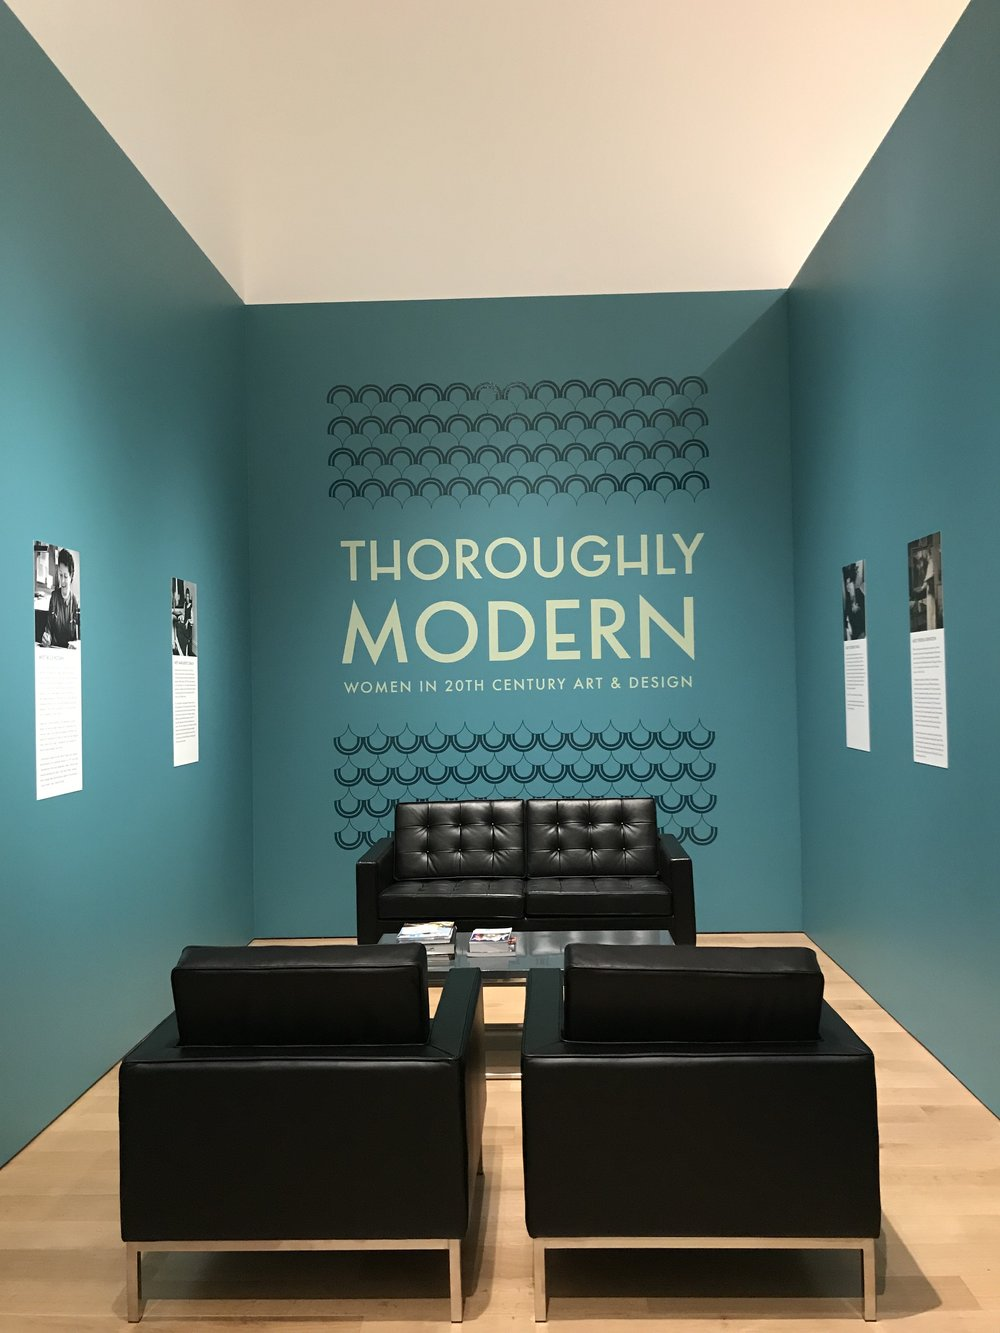 The secondary title wall, visible from other galleries in the museum, repeats the same pattern and type treatment. The pattern draws you into this separate reading space which also features biographical panels about some artists in the exhibition.